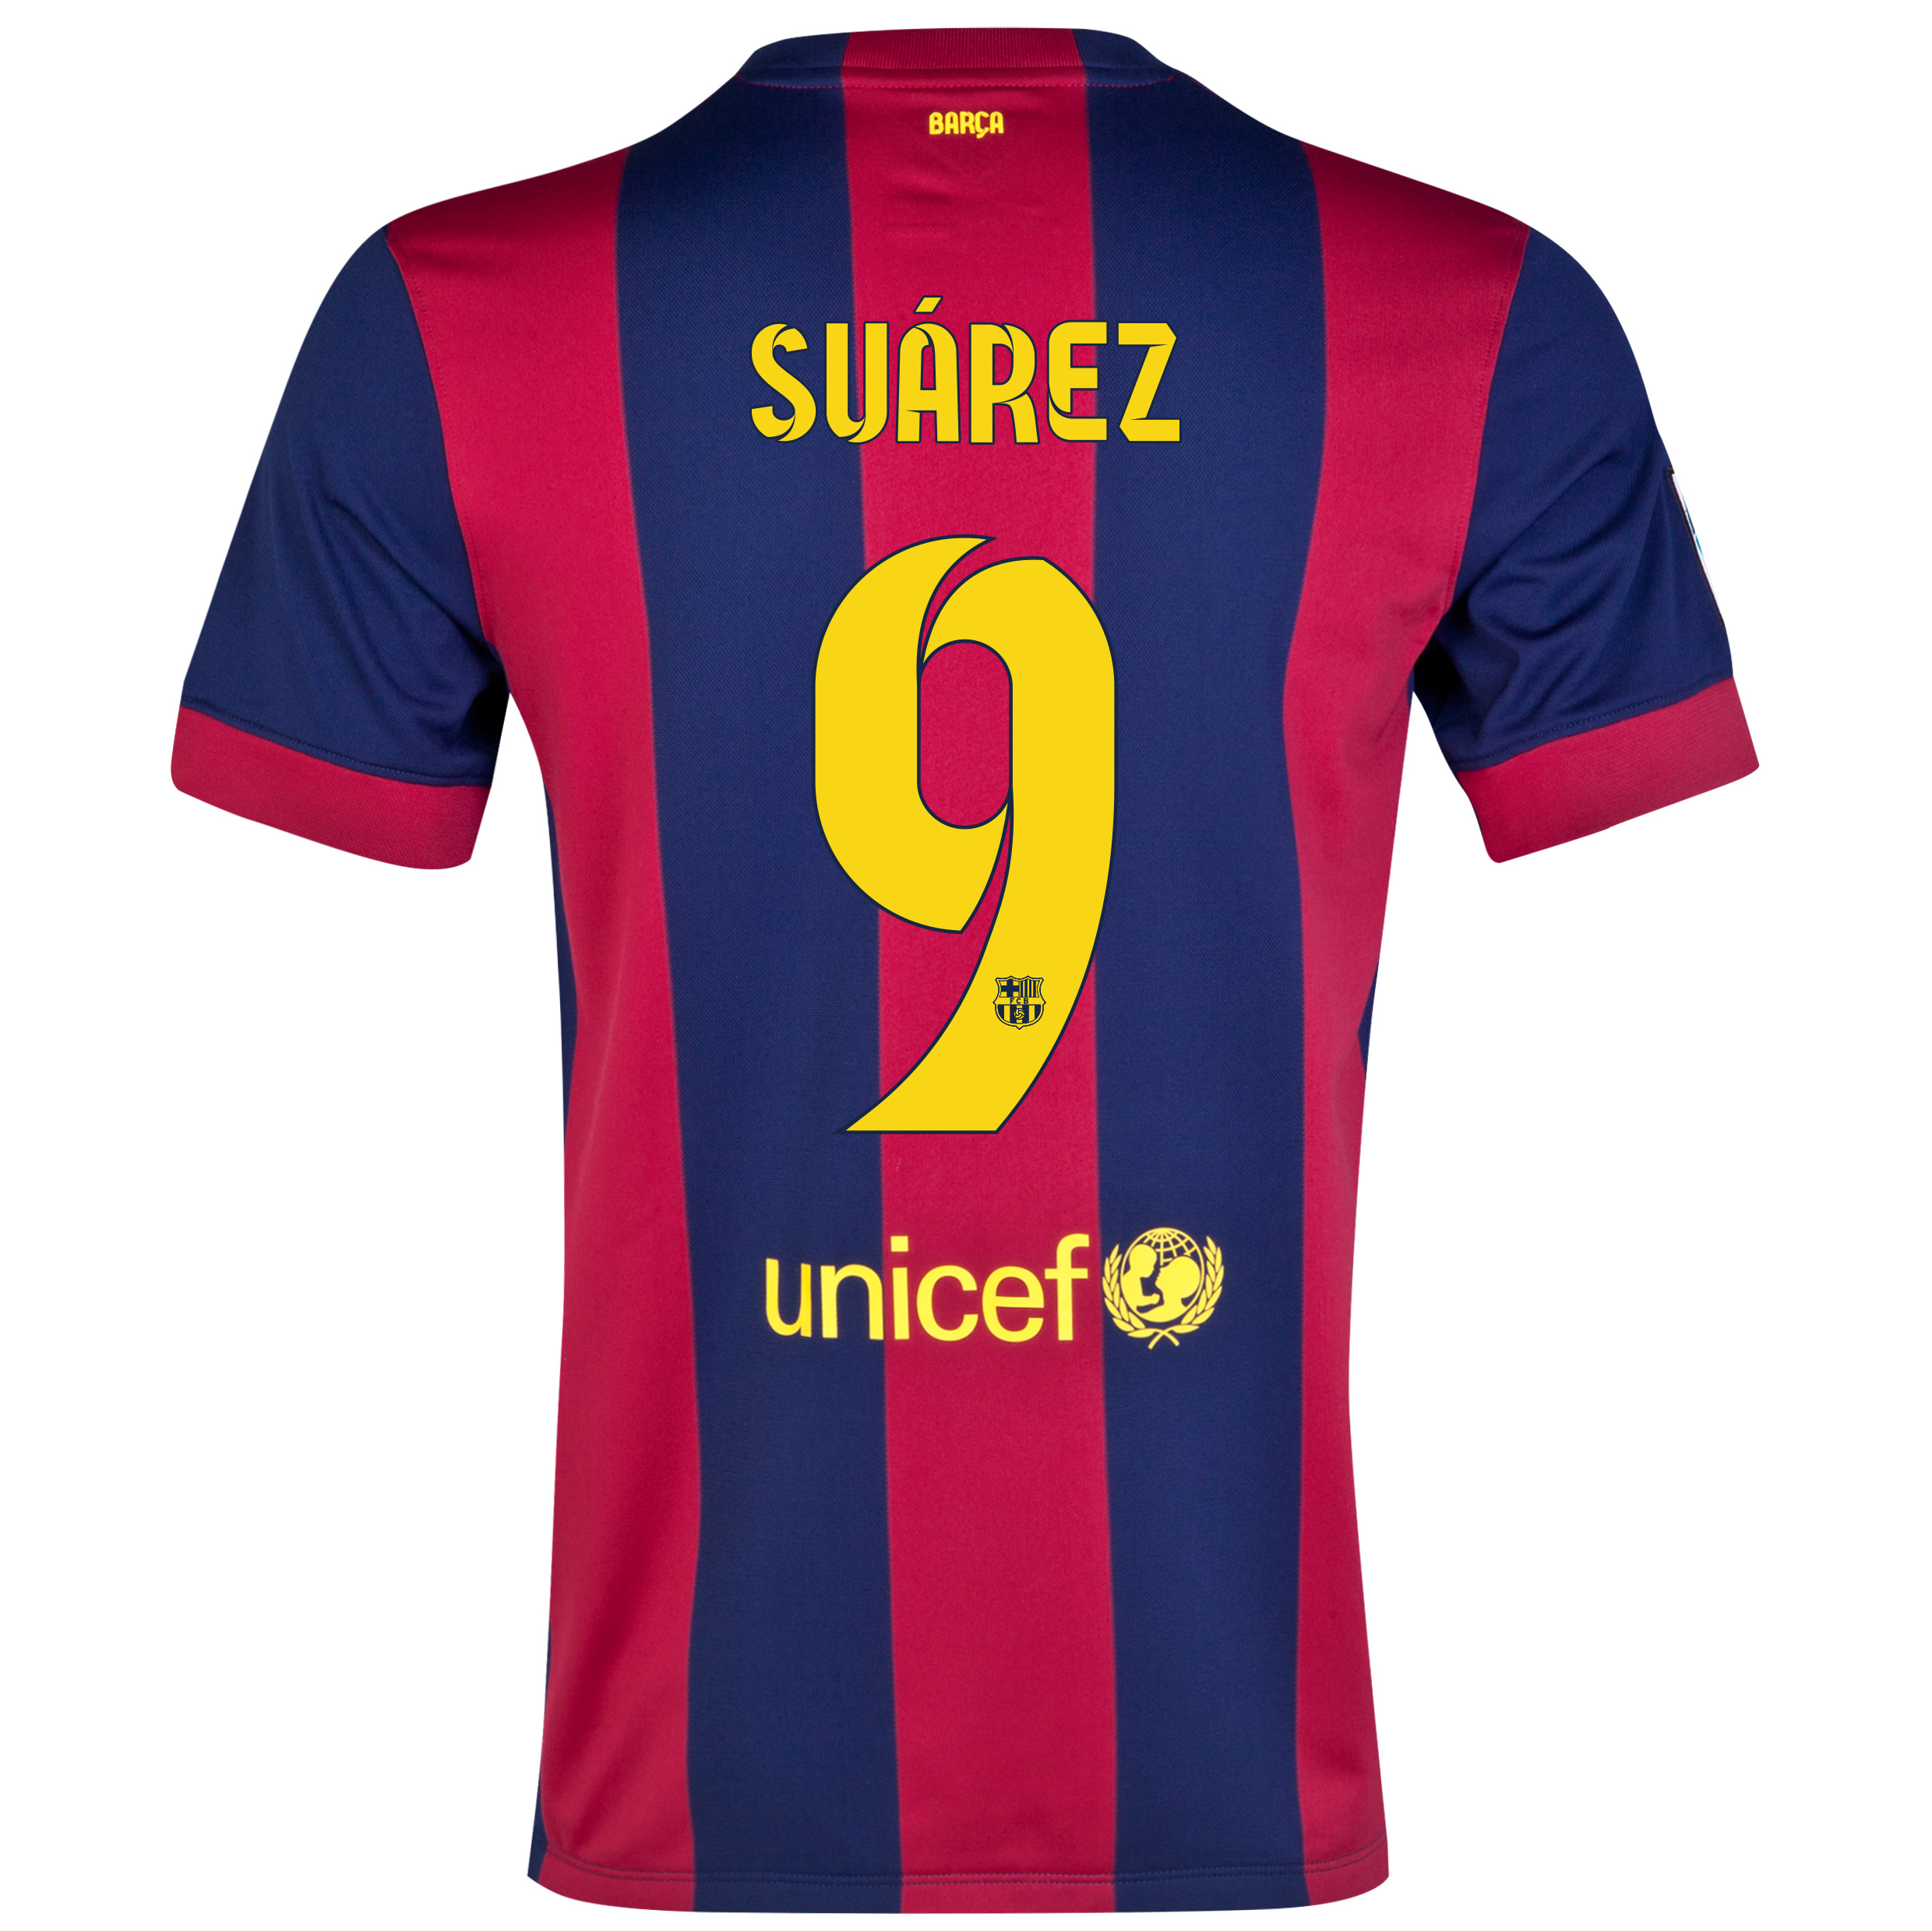 Barcelona Home Shirt 2014/15 Blue with Suárez 9 printing